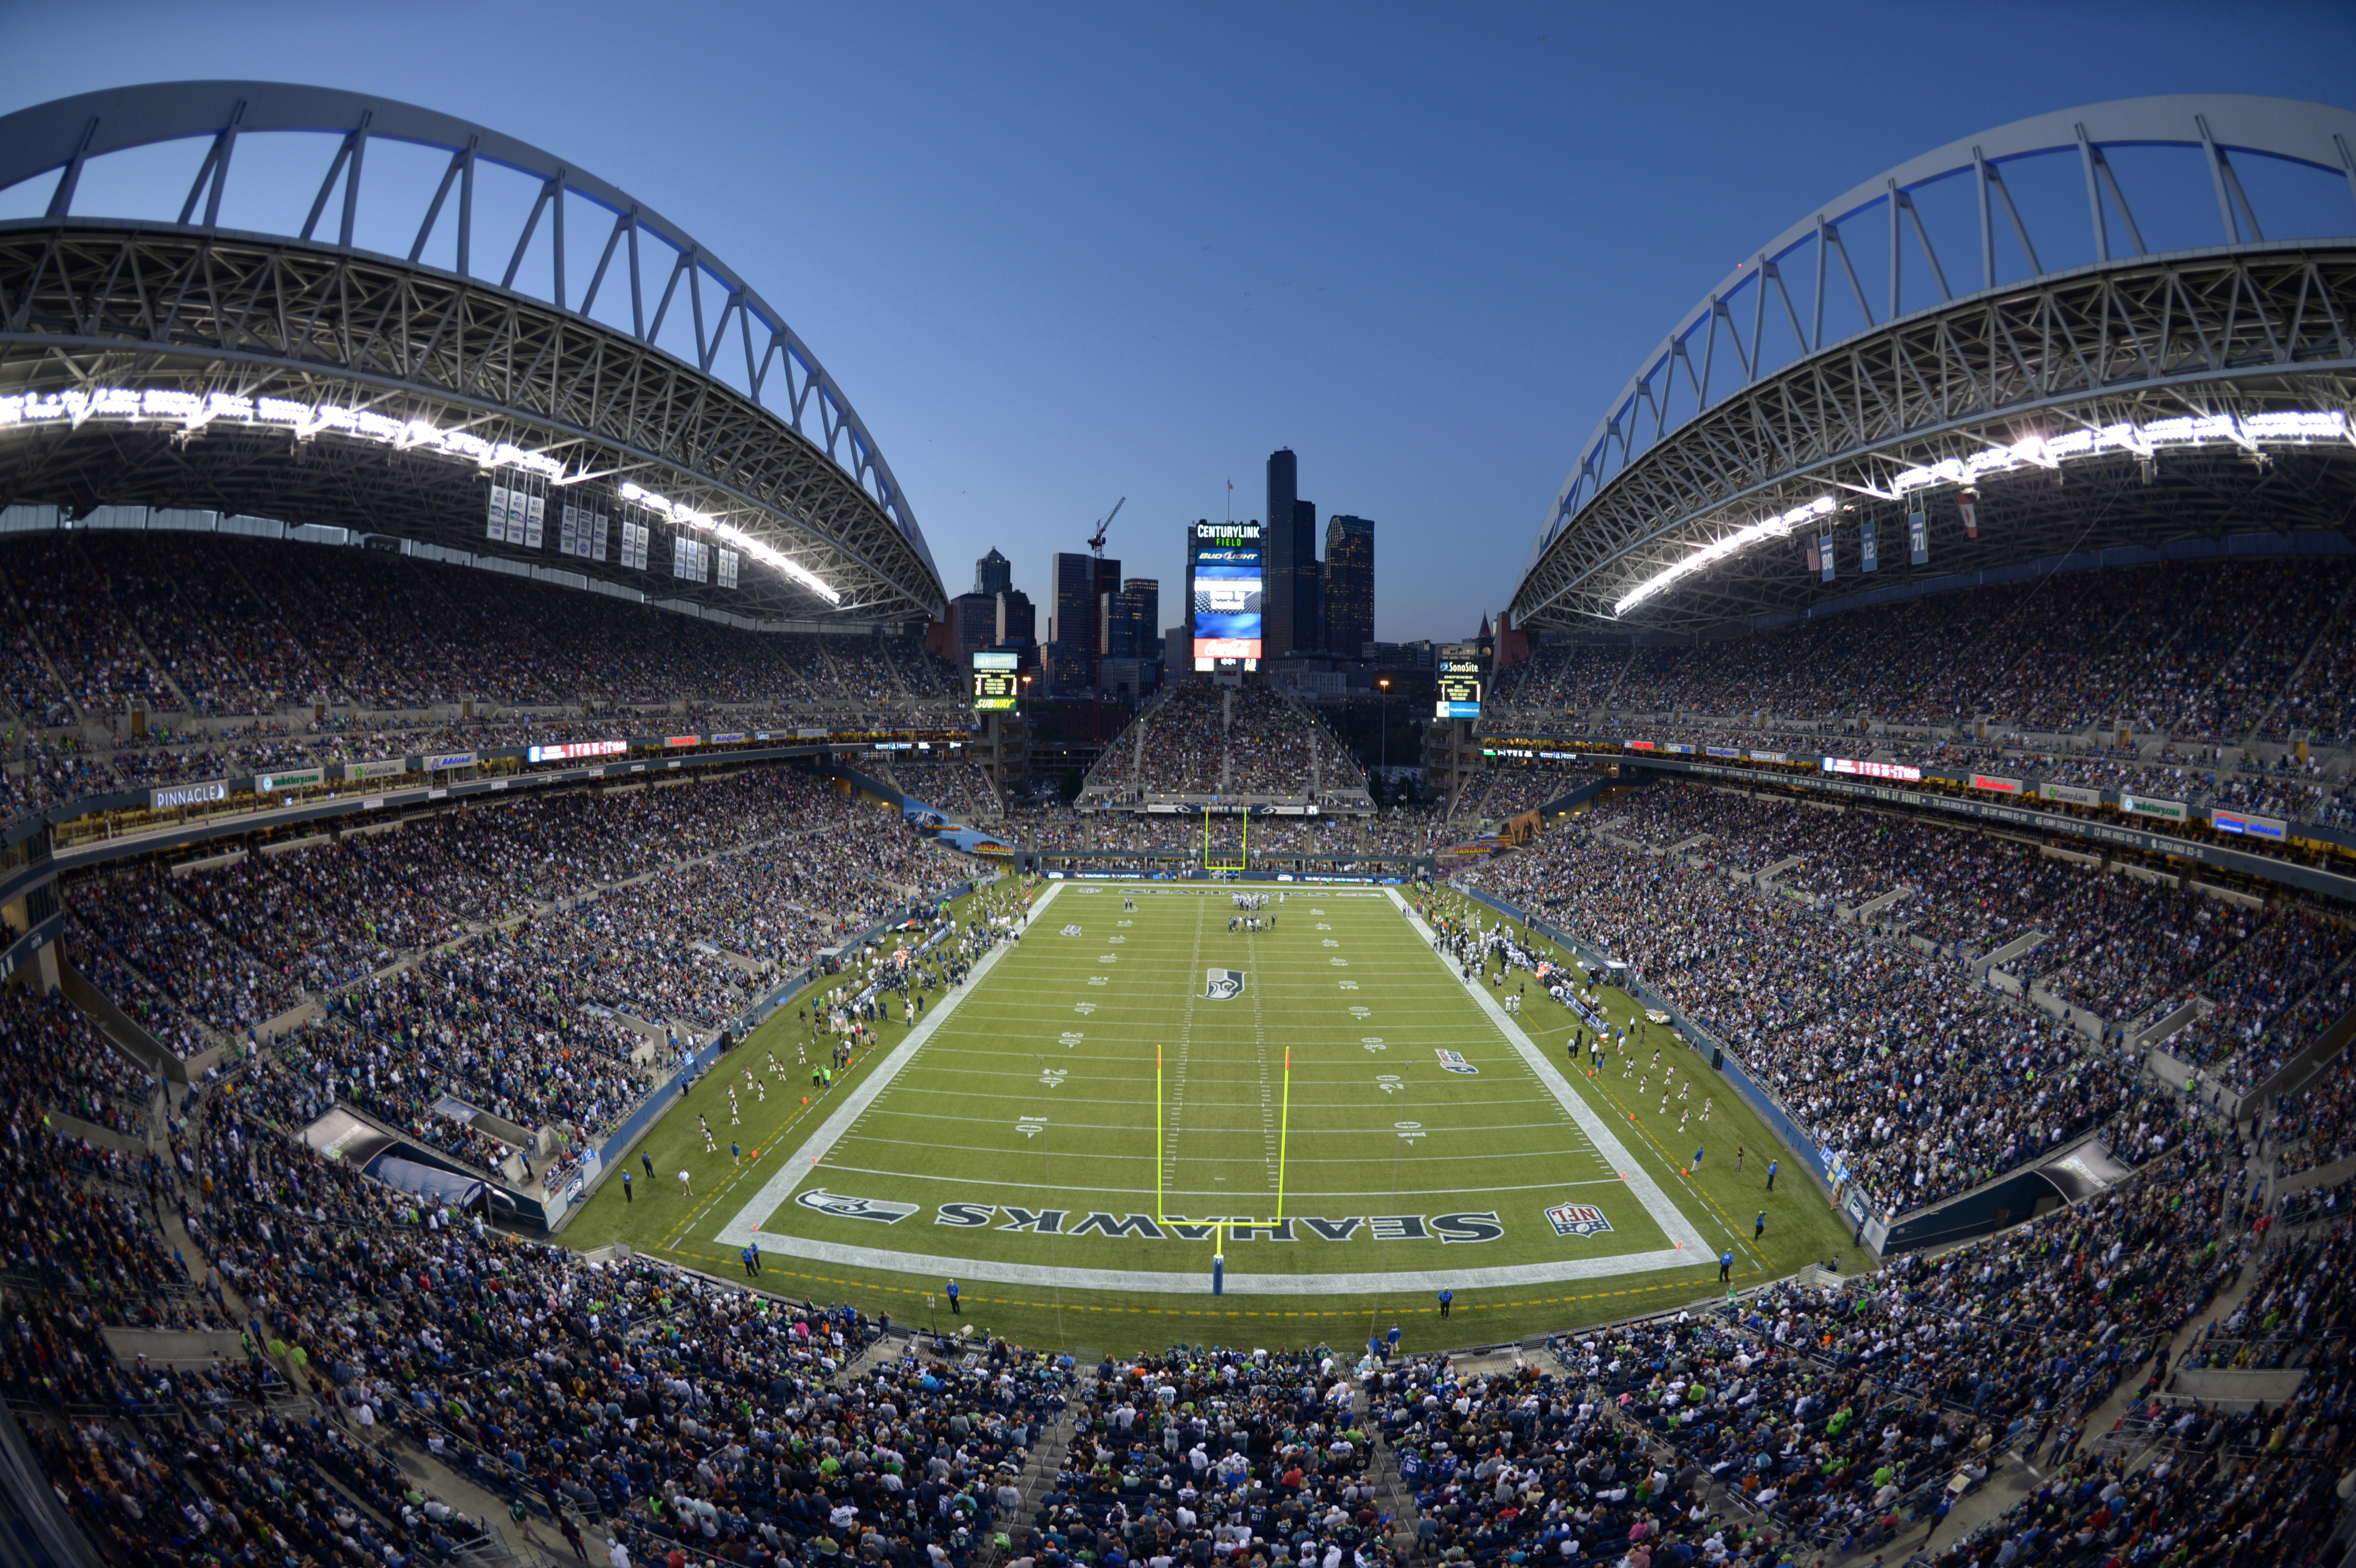 Aug 30, 2012; Seattle, WA, USA; General view of CenturyLink Field and the downtown Seattle skyline during the NFL game between the Oakland Raiders and Seattle Seahawks. Mandatory Credit: Kirby Lee/Image of Sport-US PRESSWIRE